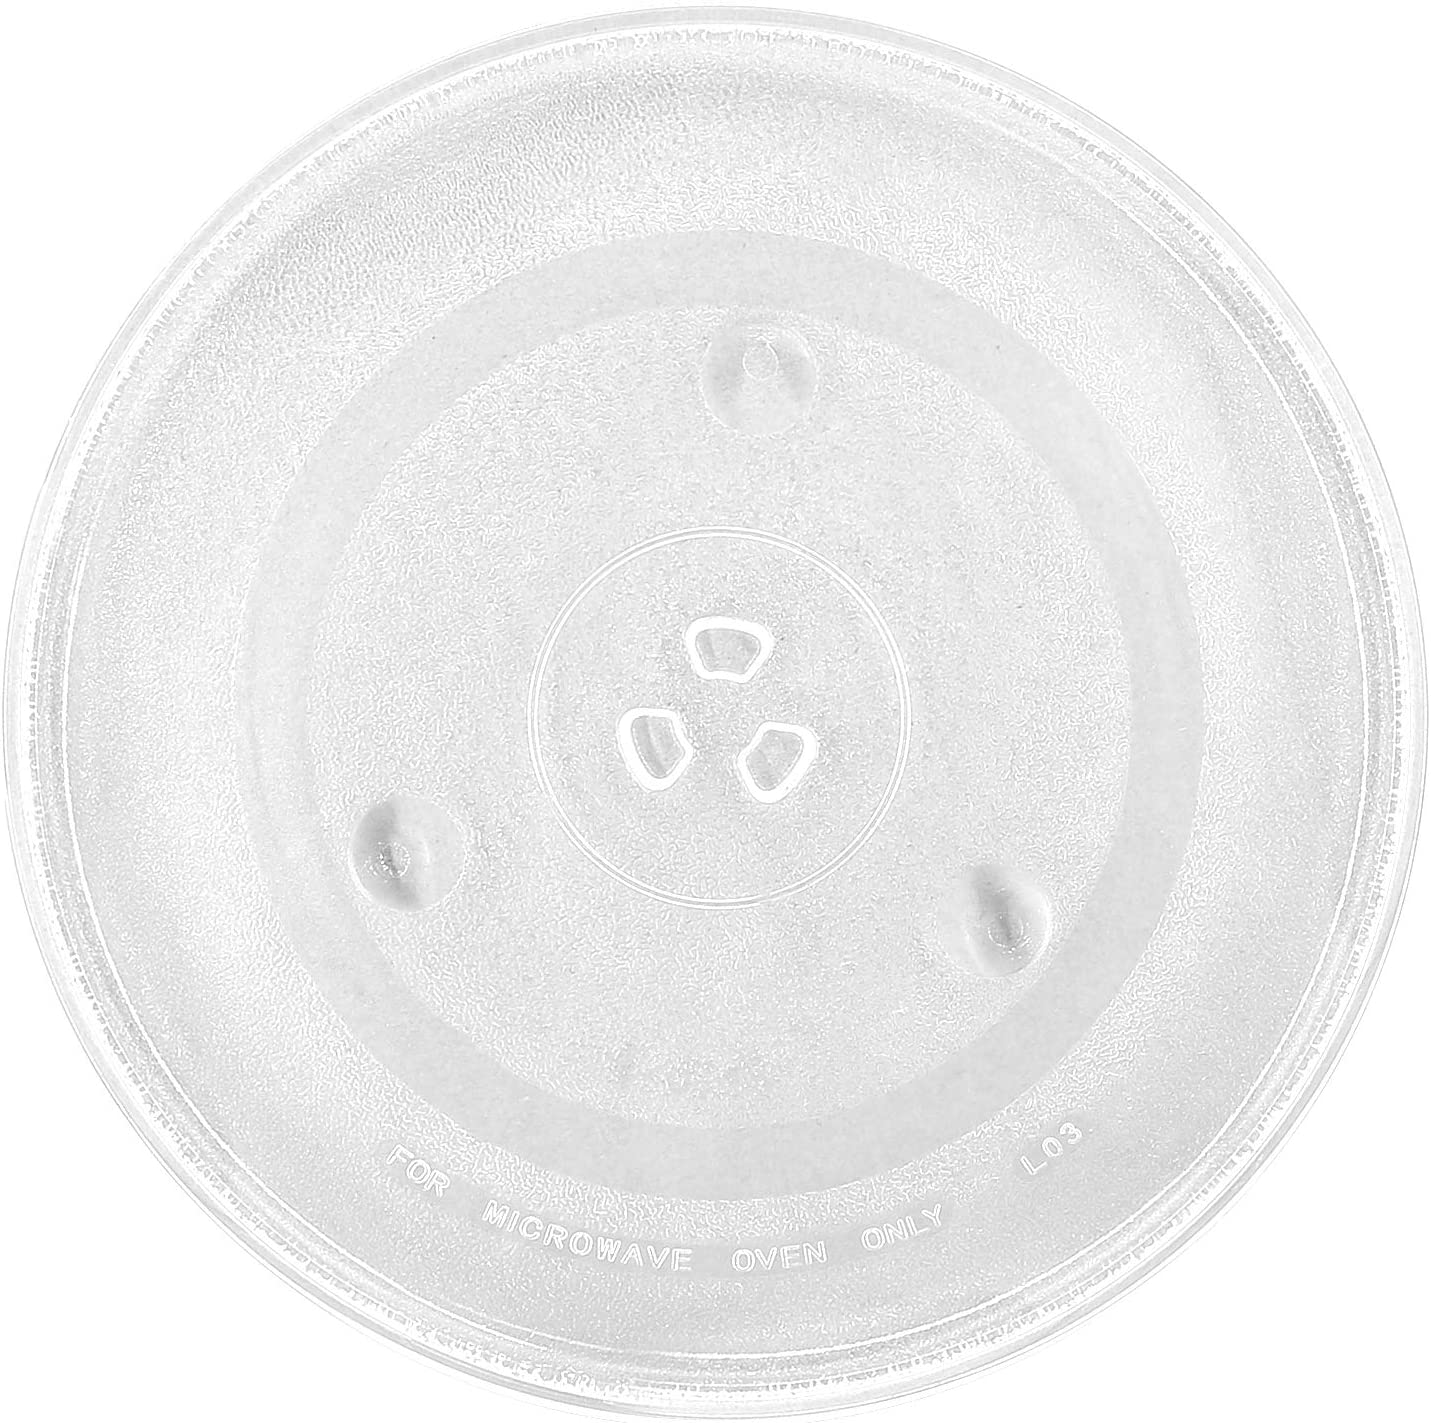 "12.5'' Microwave Glass Plate Turntable Replacement 12 1/2"" With 3 Part Bushing Couplers Centerpieces, Round Rotating Dish Tray for Microwaves"